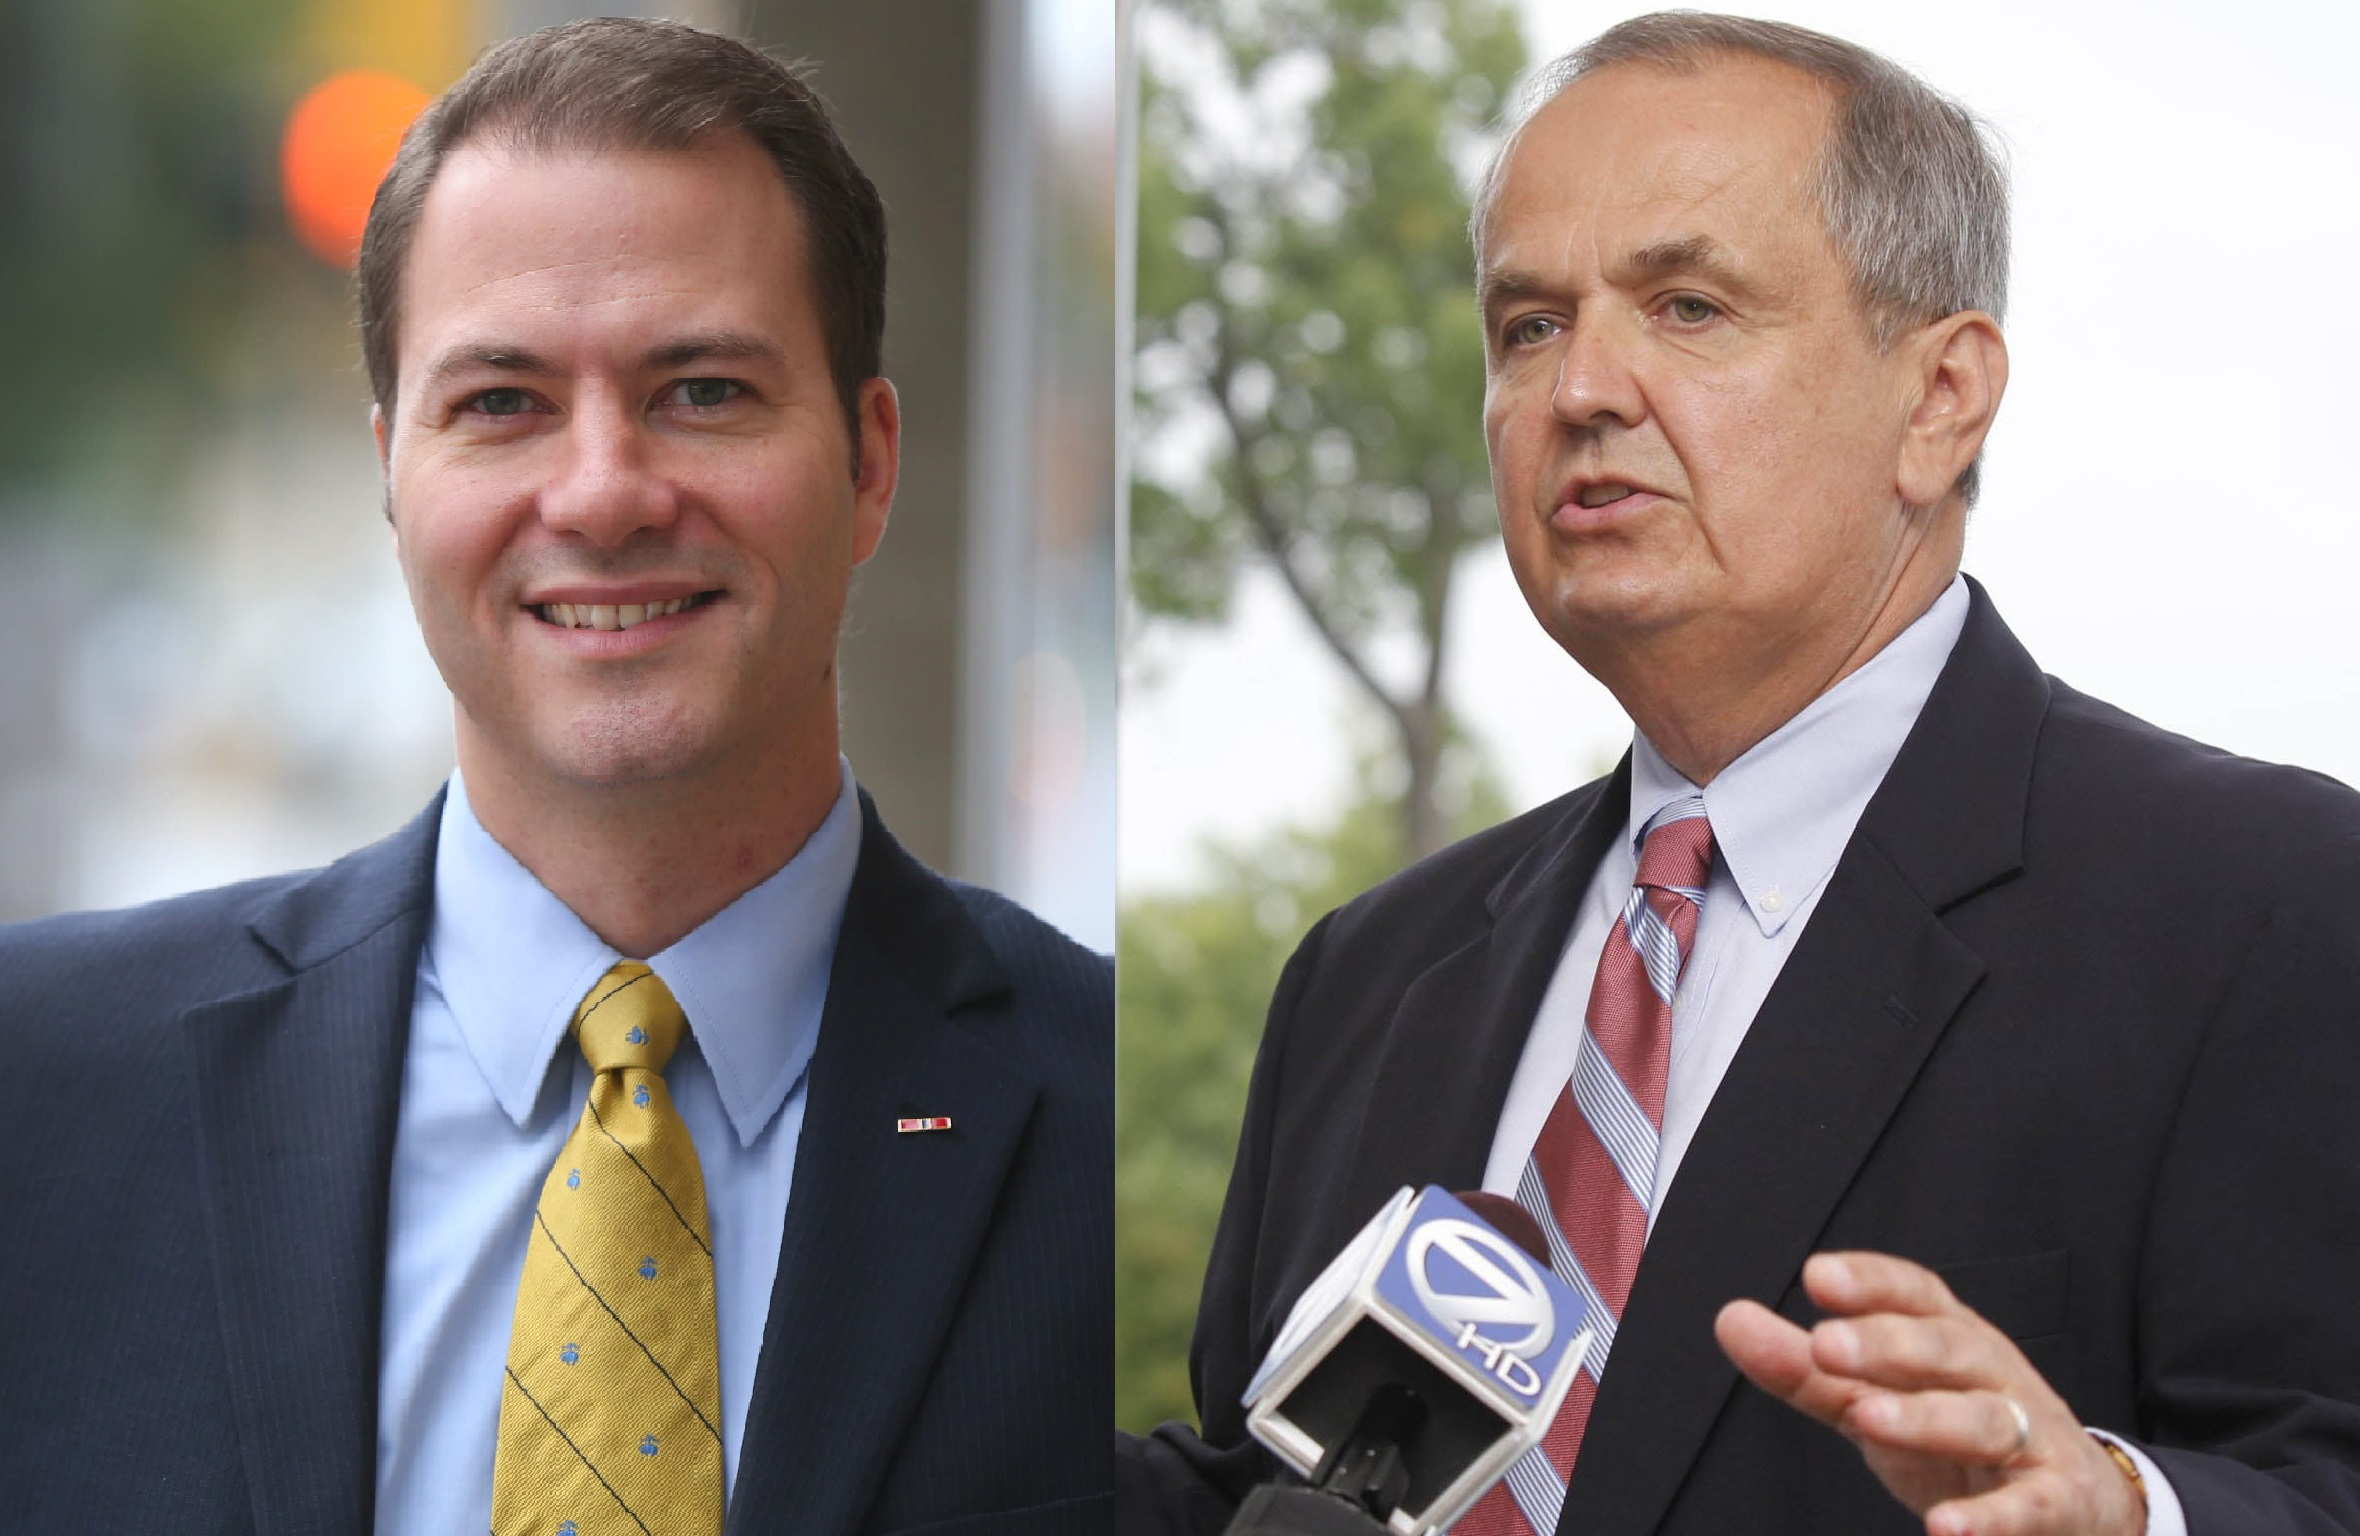 State Sen. Rob Ortt, left, and former State Sen. George Maziarz, right, were indicted by an Albany grand jury on Wednesday. (News file photos)